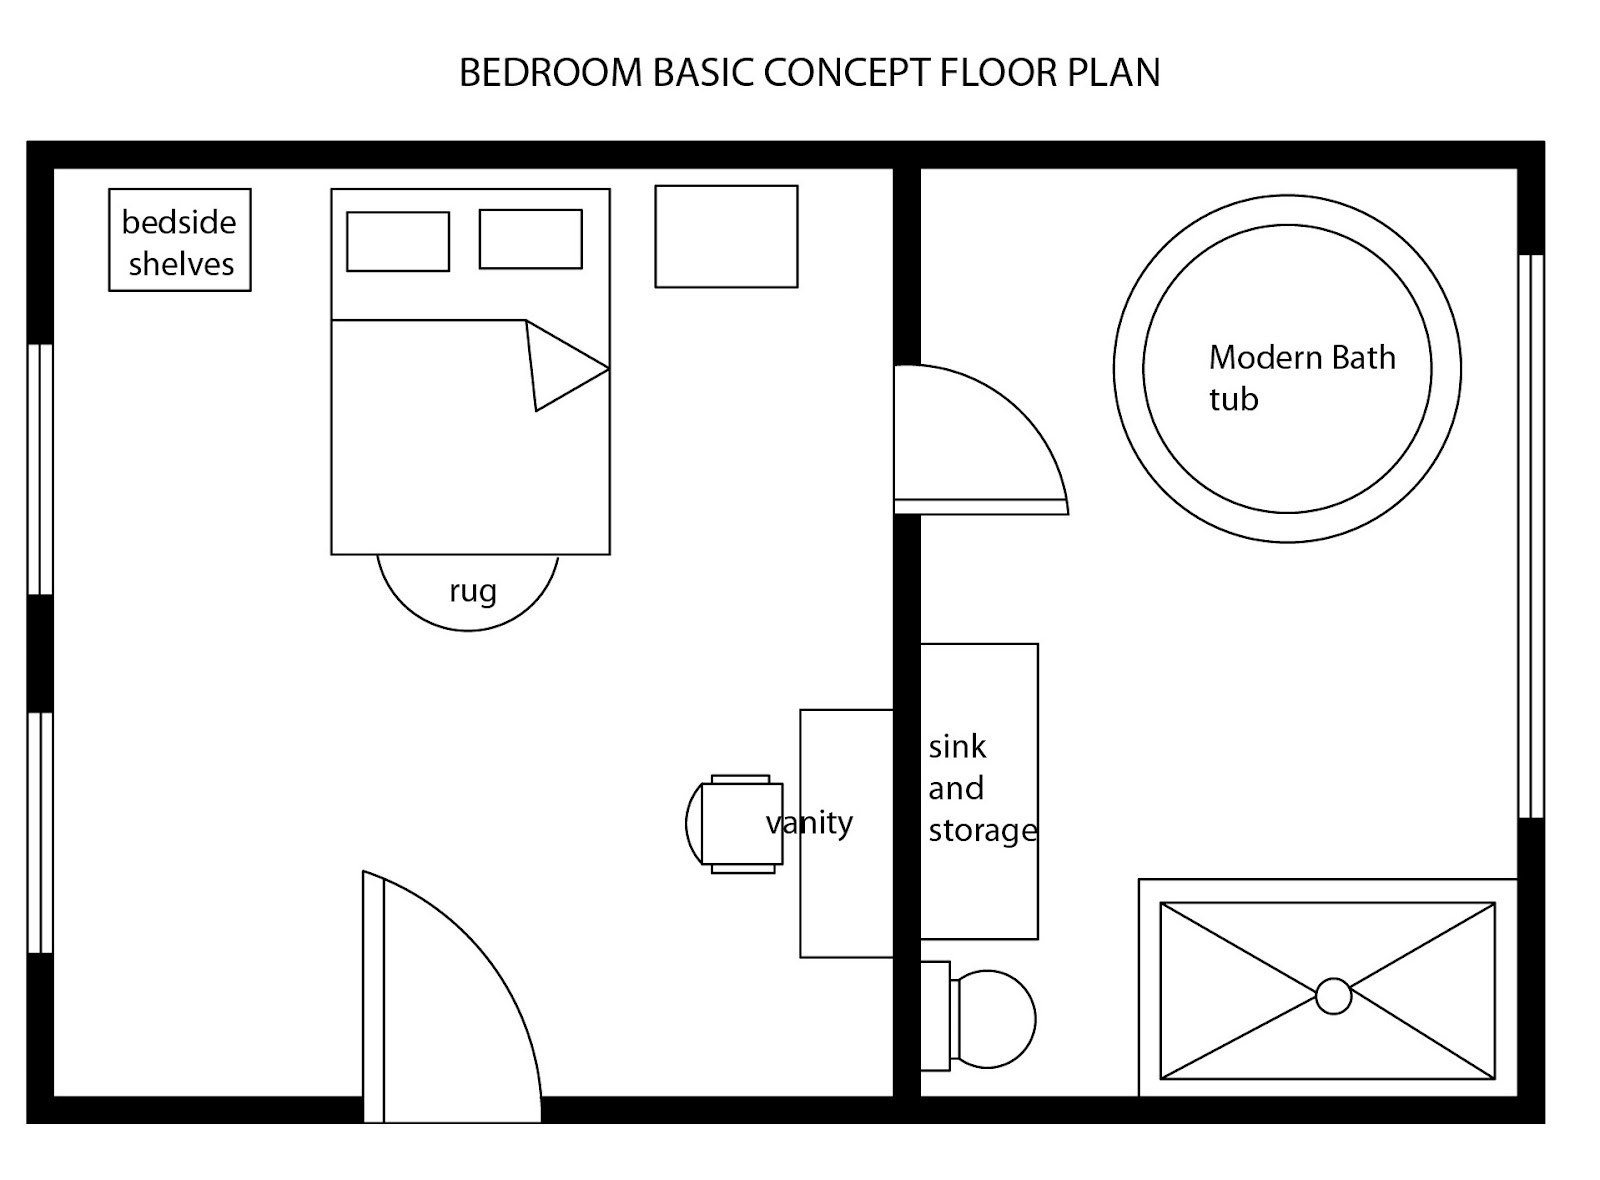 Interior design decor modern bedroom basic floor plan for Plan my bedroom design